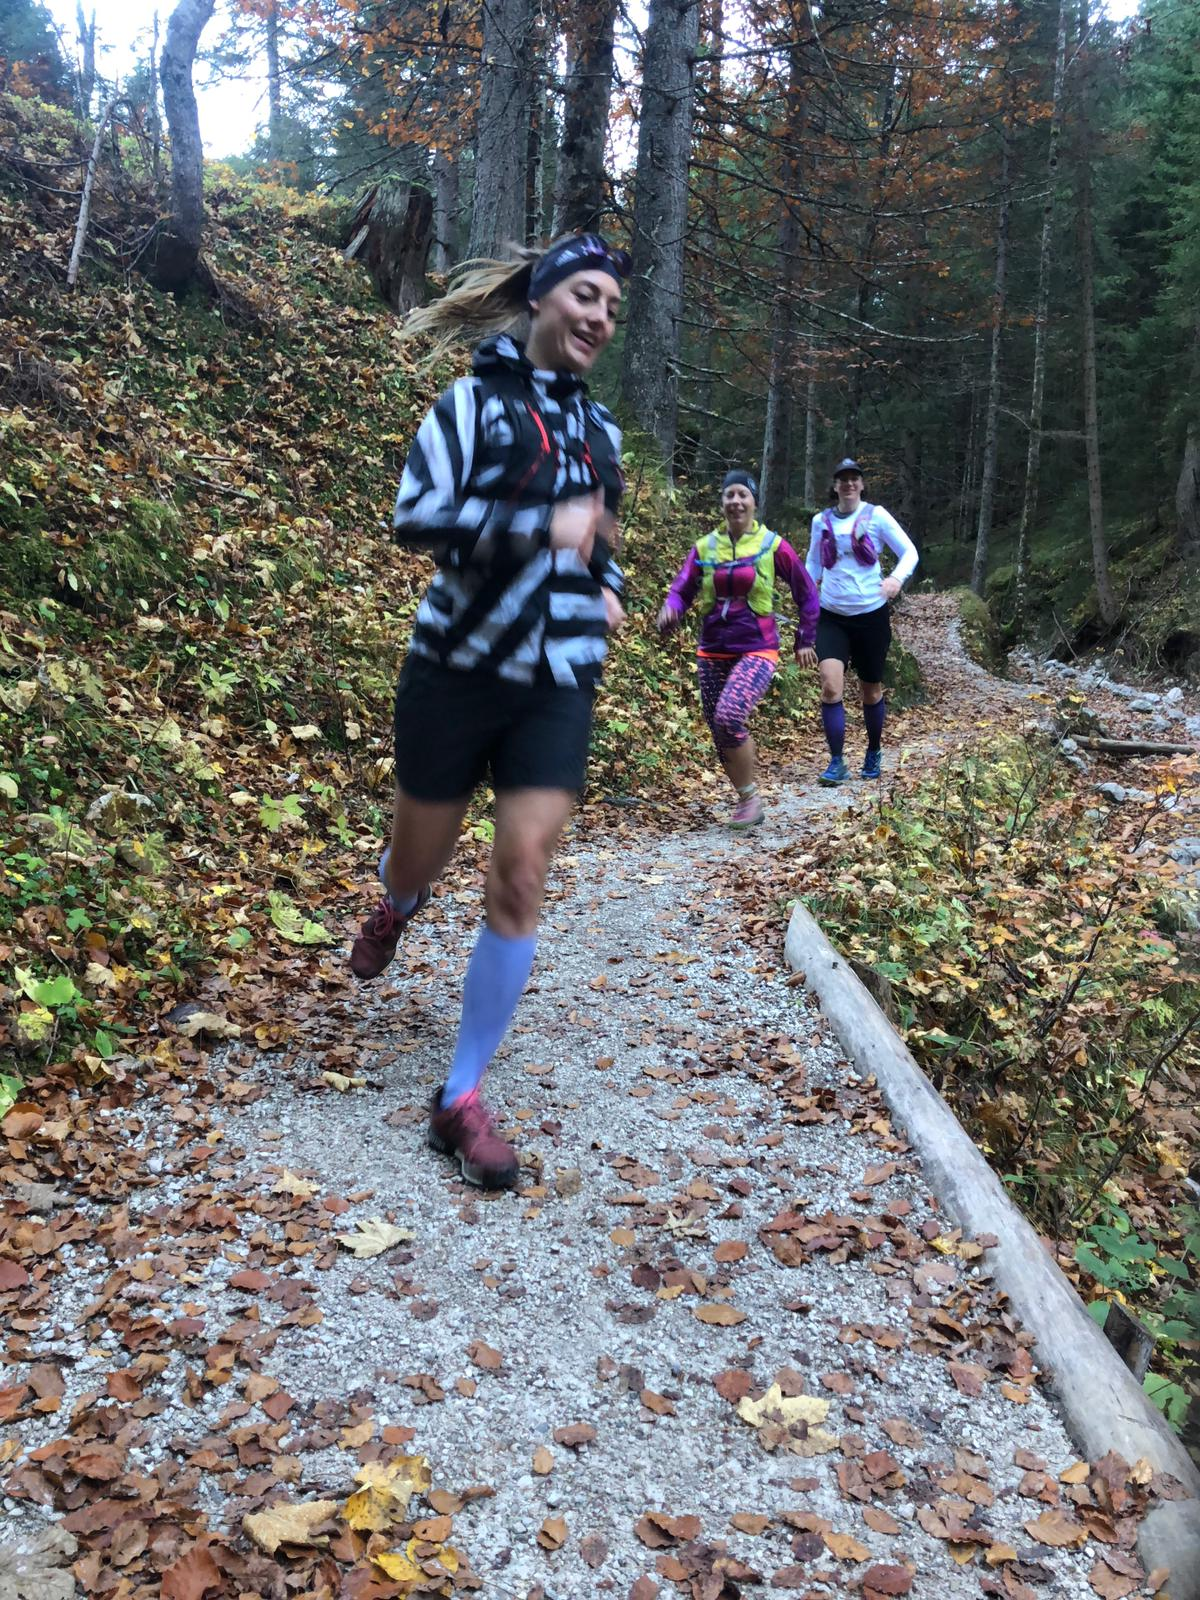 TrailrunningTirolerZugspitzArena-MunichMountainGirls- Laufen Action